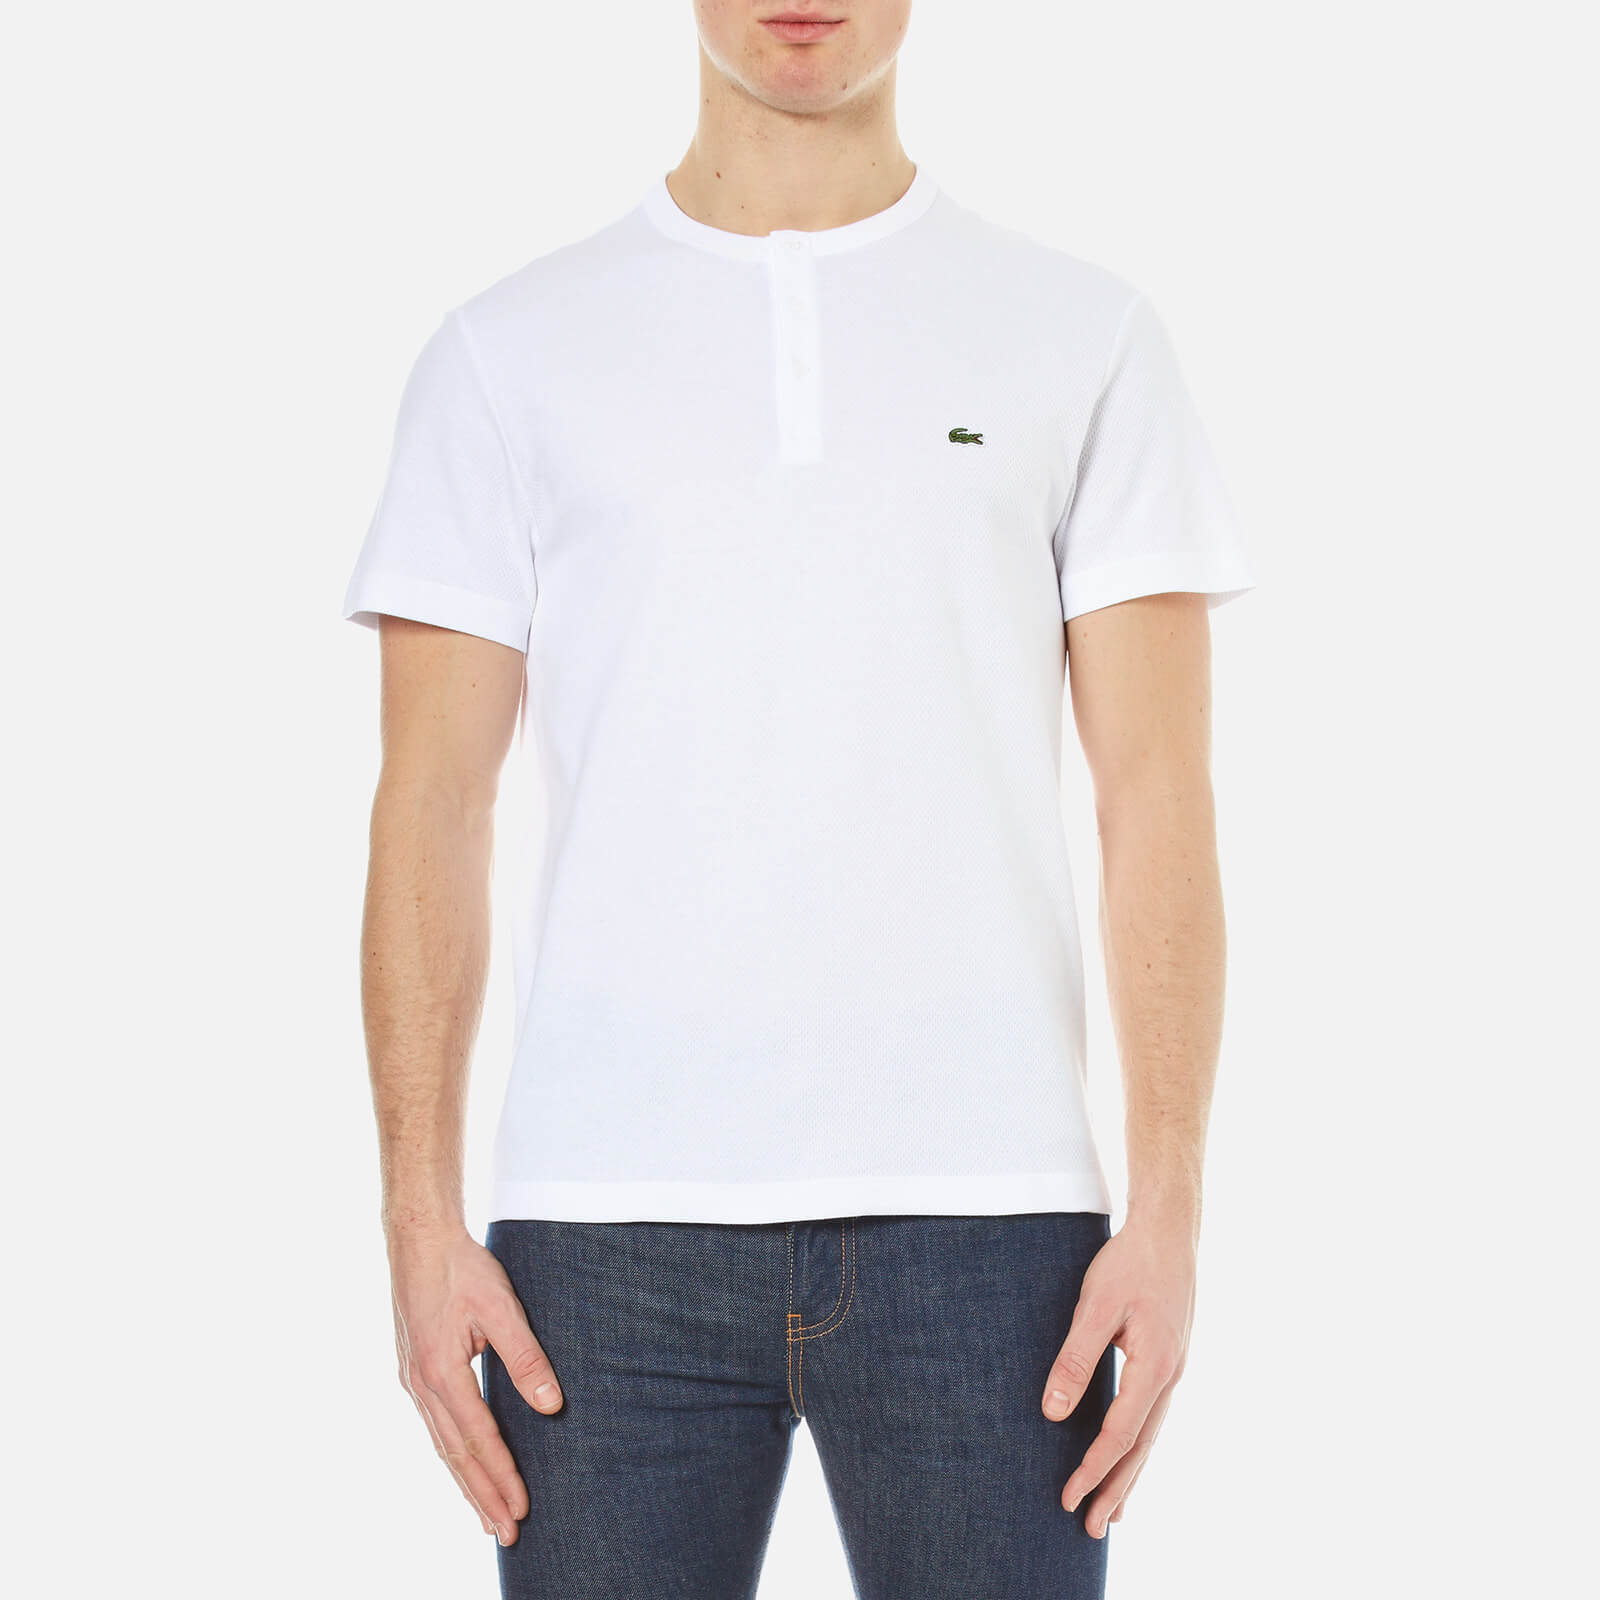 8b954859c711 Lacoste Men s Henley Collar T-Shirt - White - Free UK Delivery over £50